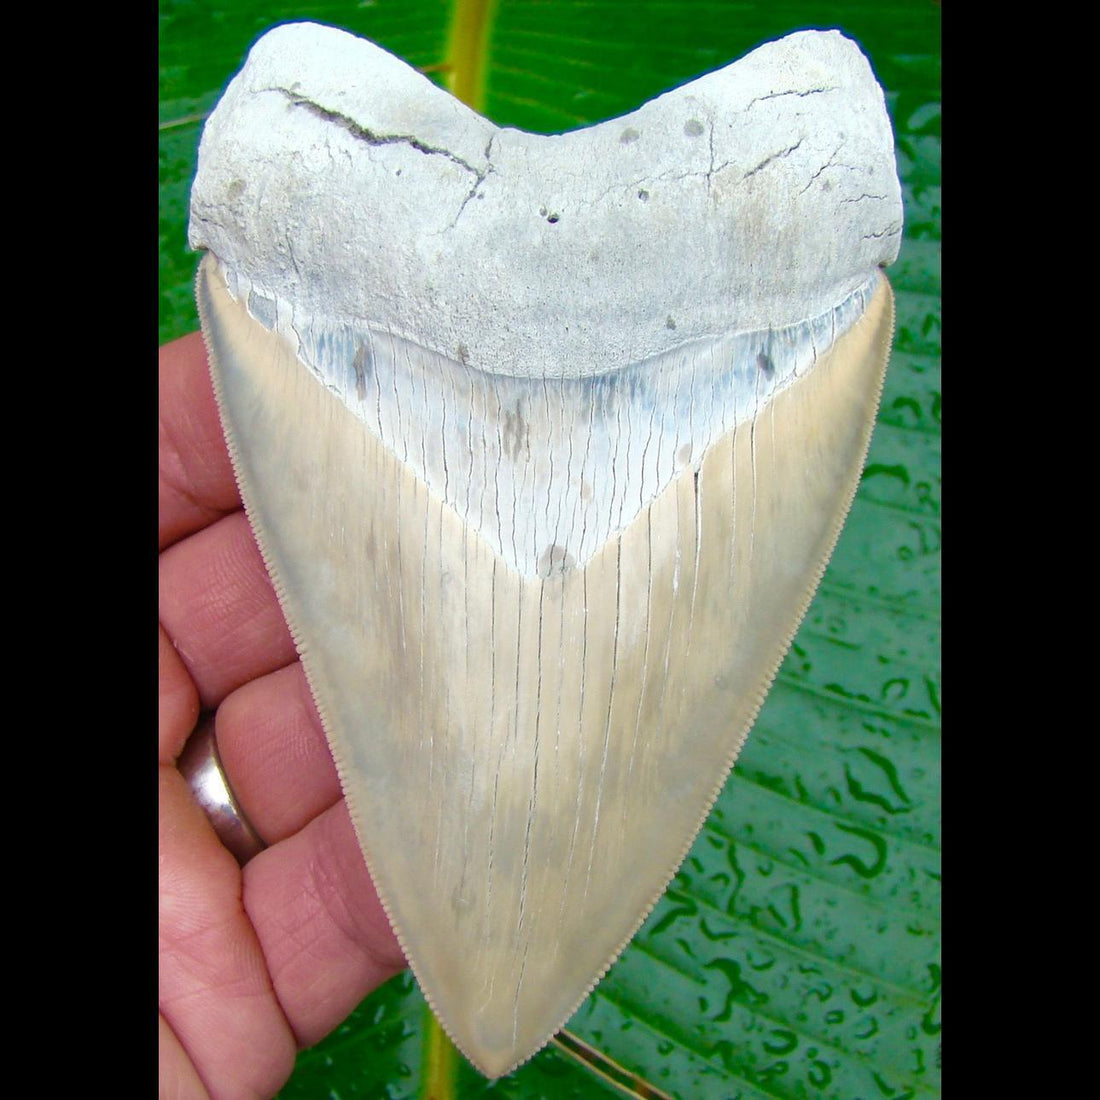 Megalodon Tooth OVER 4 & 7/16 in. * BEST of the BEST * Lee Creek / Aurora Megalodon Shark Tooth